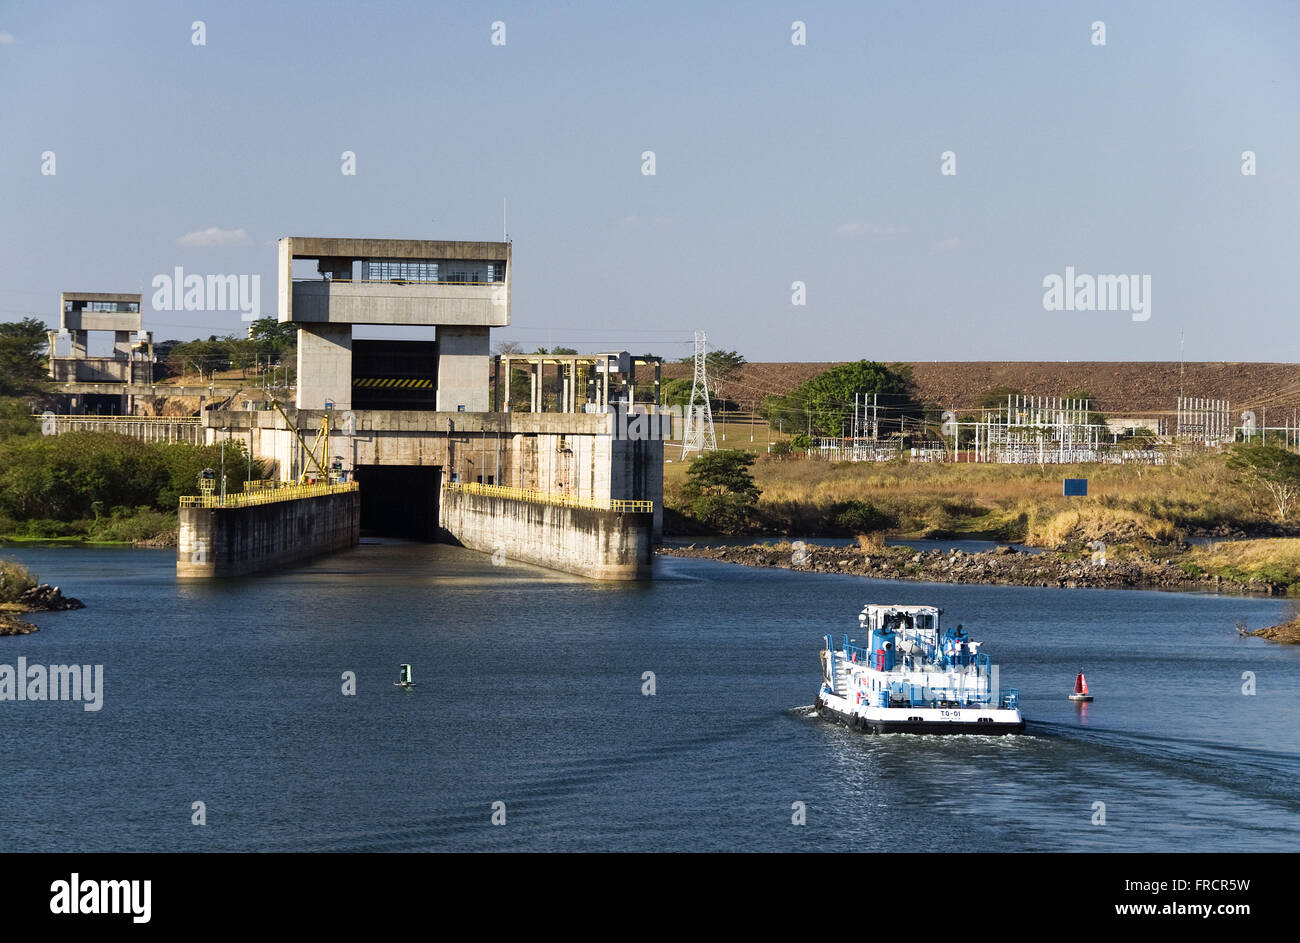 Tug entering the sluice dam hydroelectric plant in New Avanhandava - Stock Image